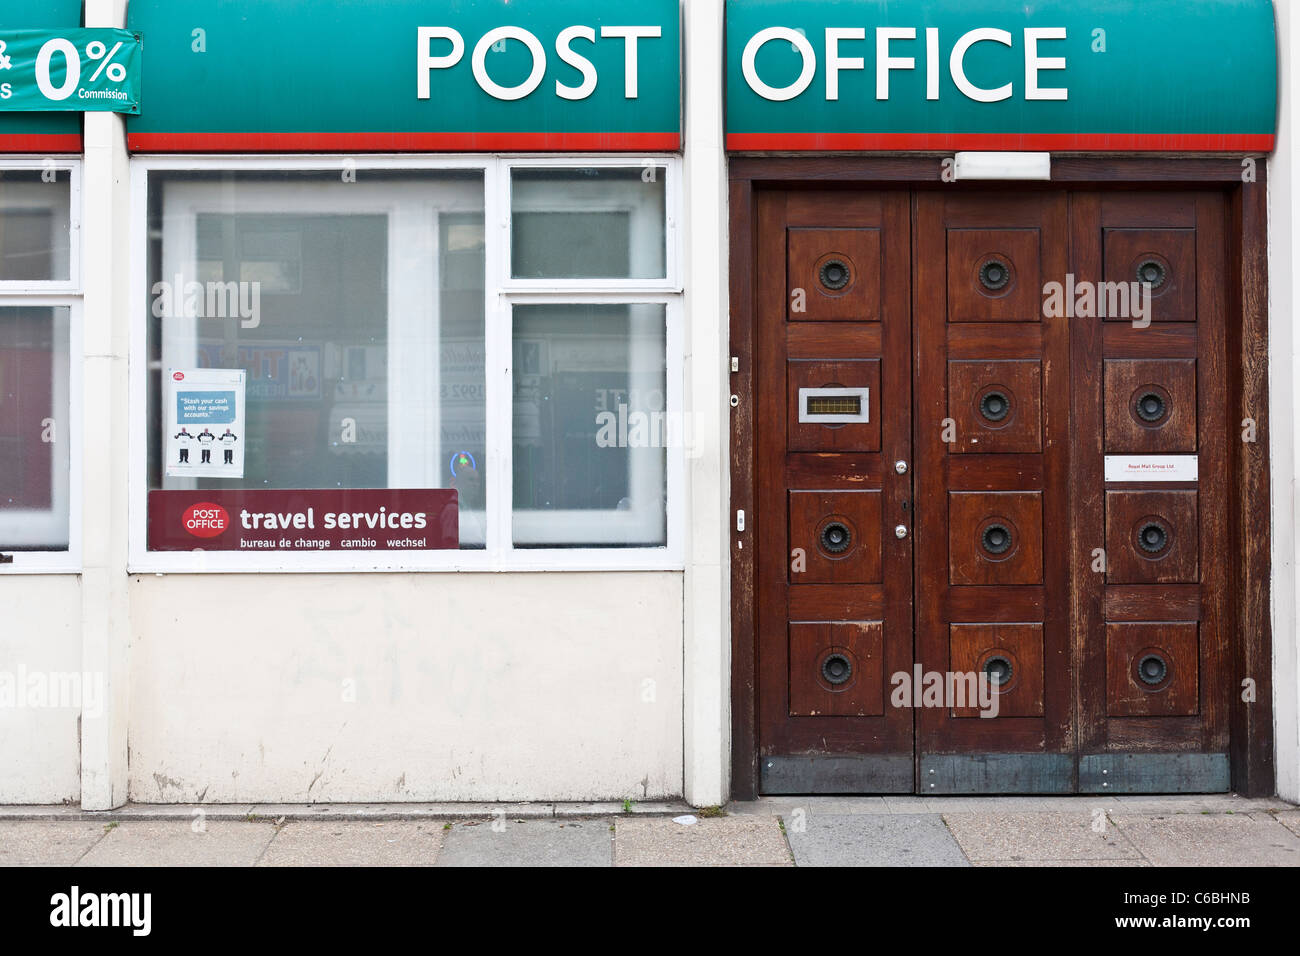 A branch of Post Office in London Stock Photo